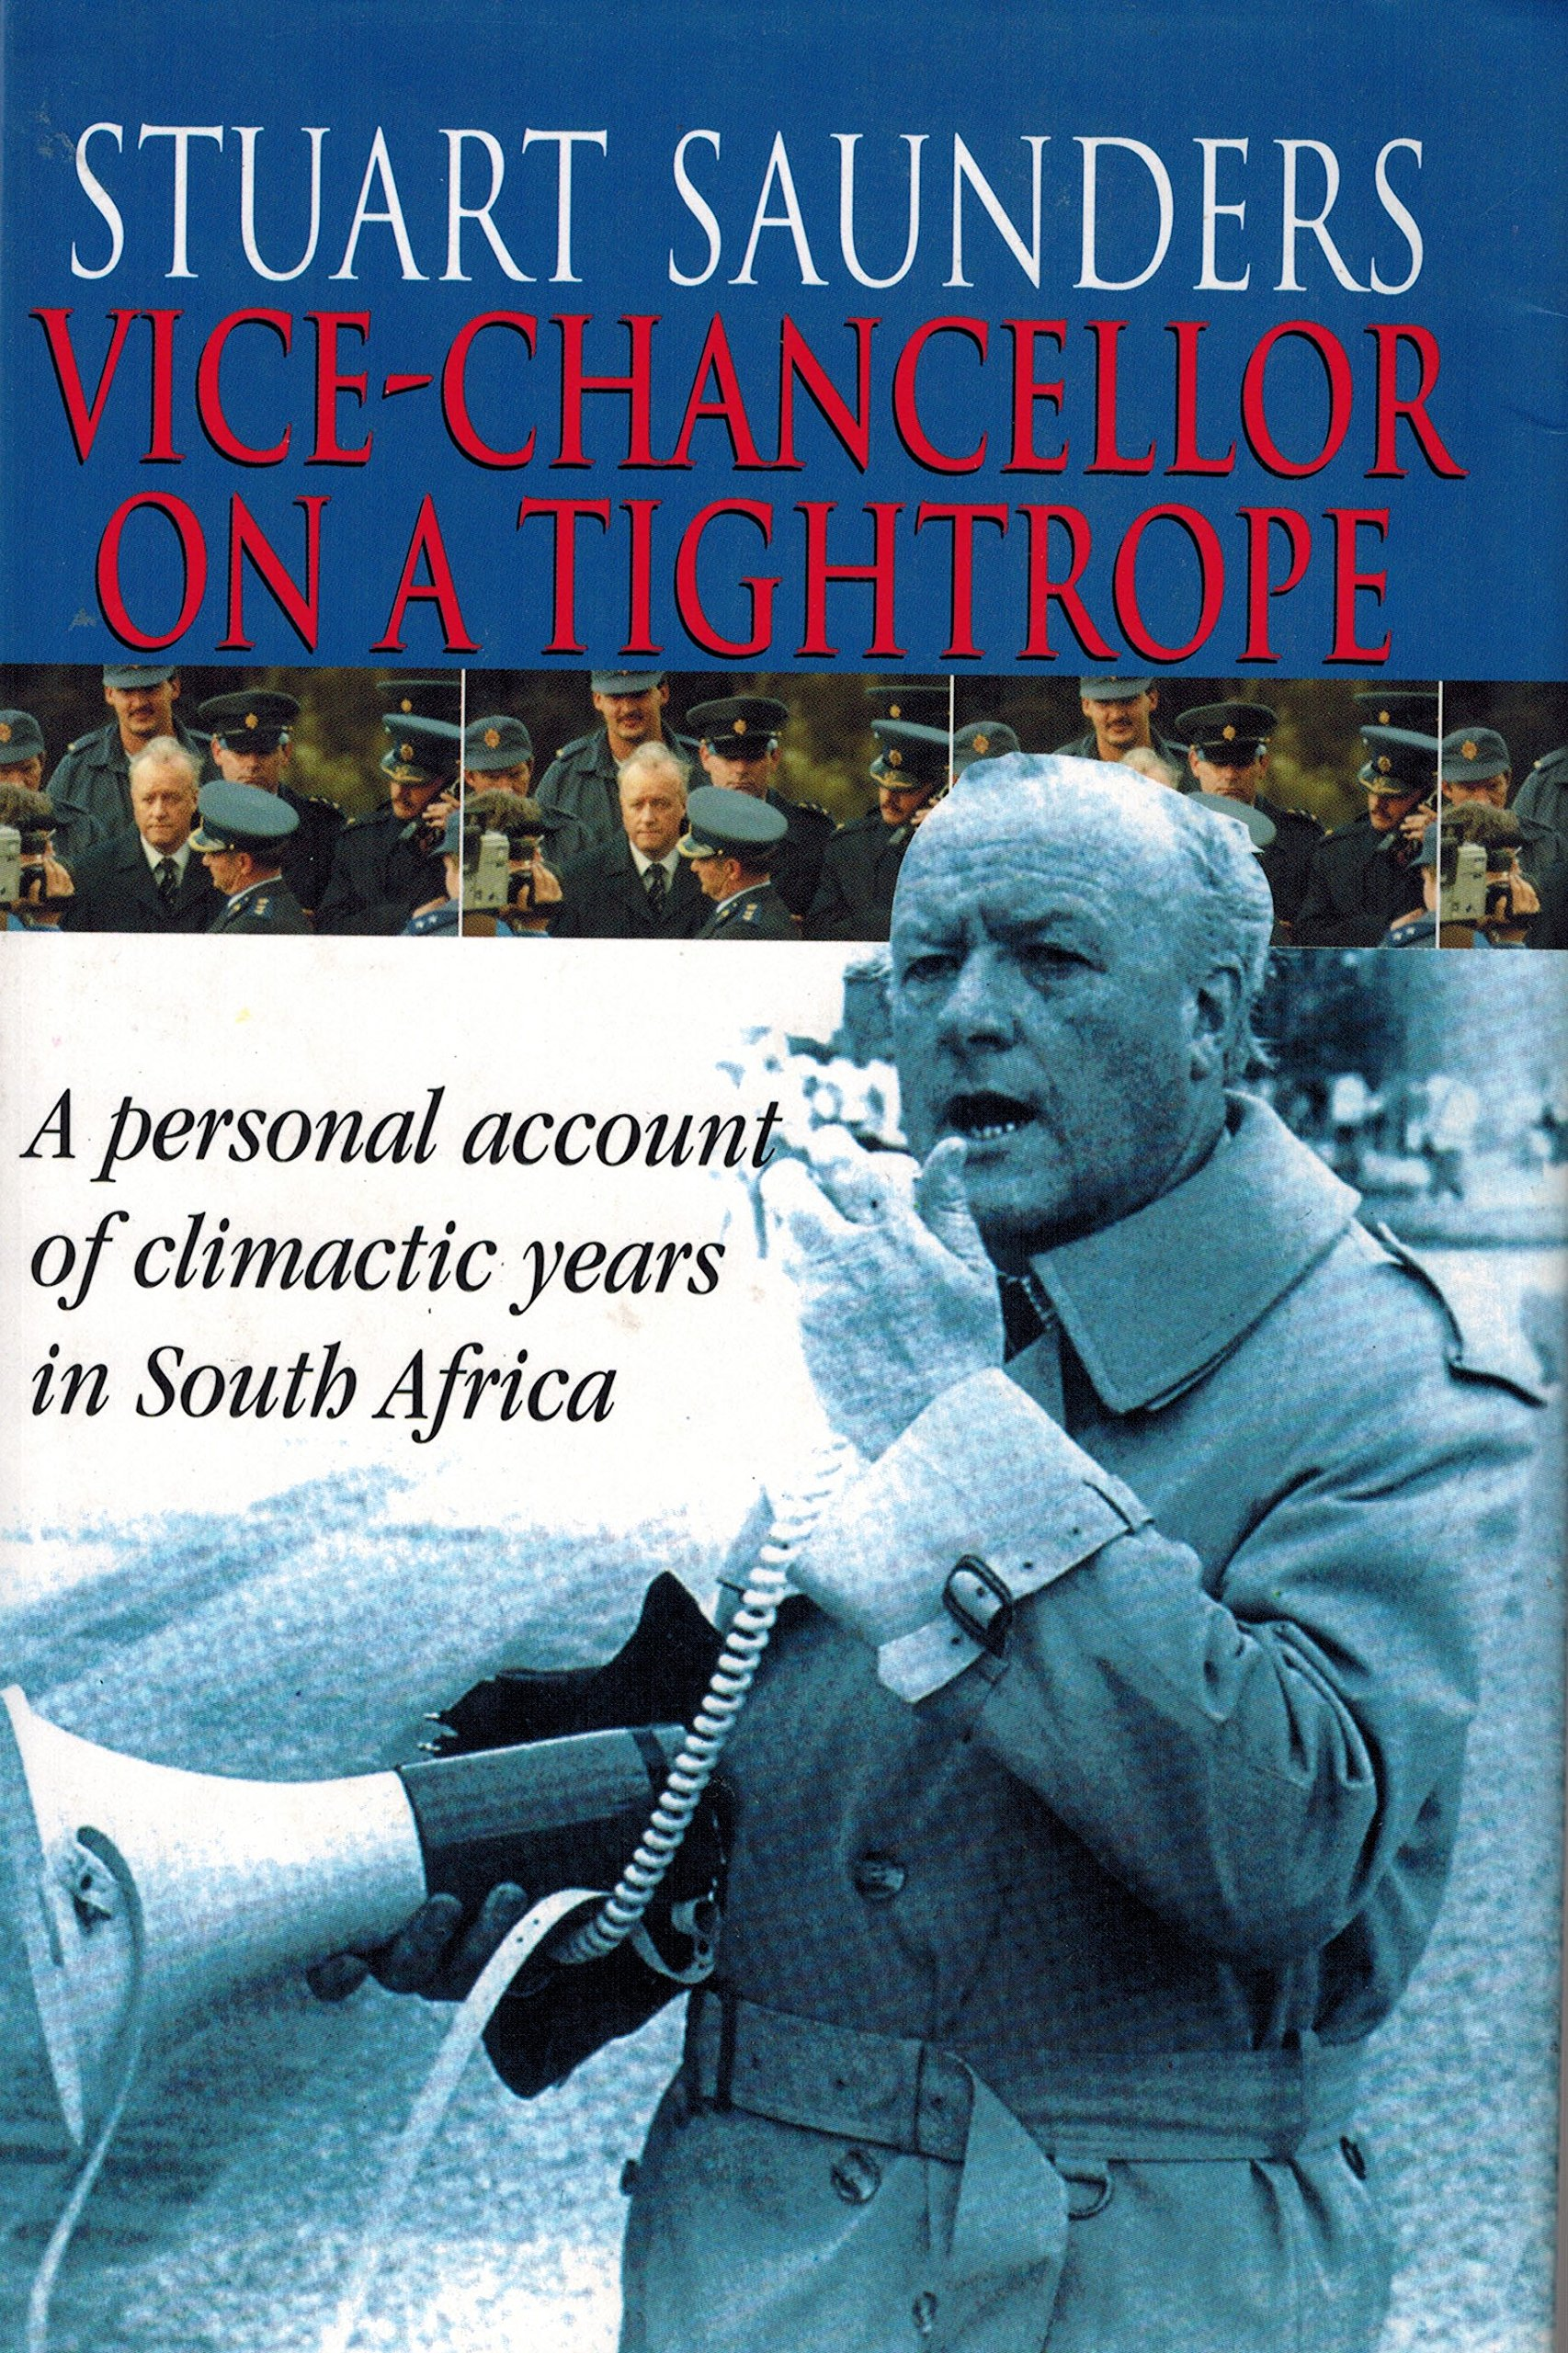 Vice-Chancellor on a Tightrope: A personal account of climactic years in South Africa (2000)